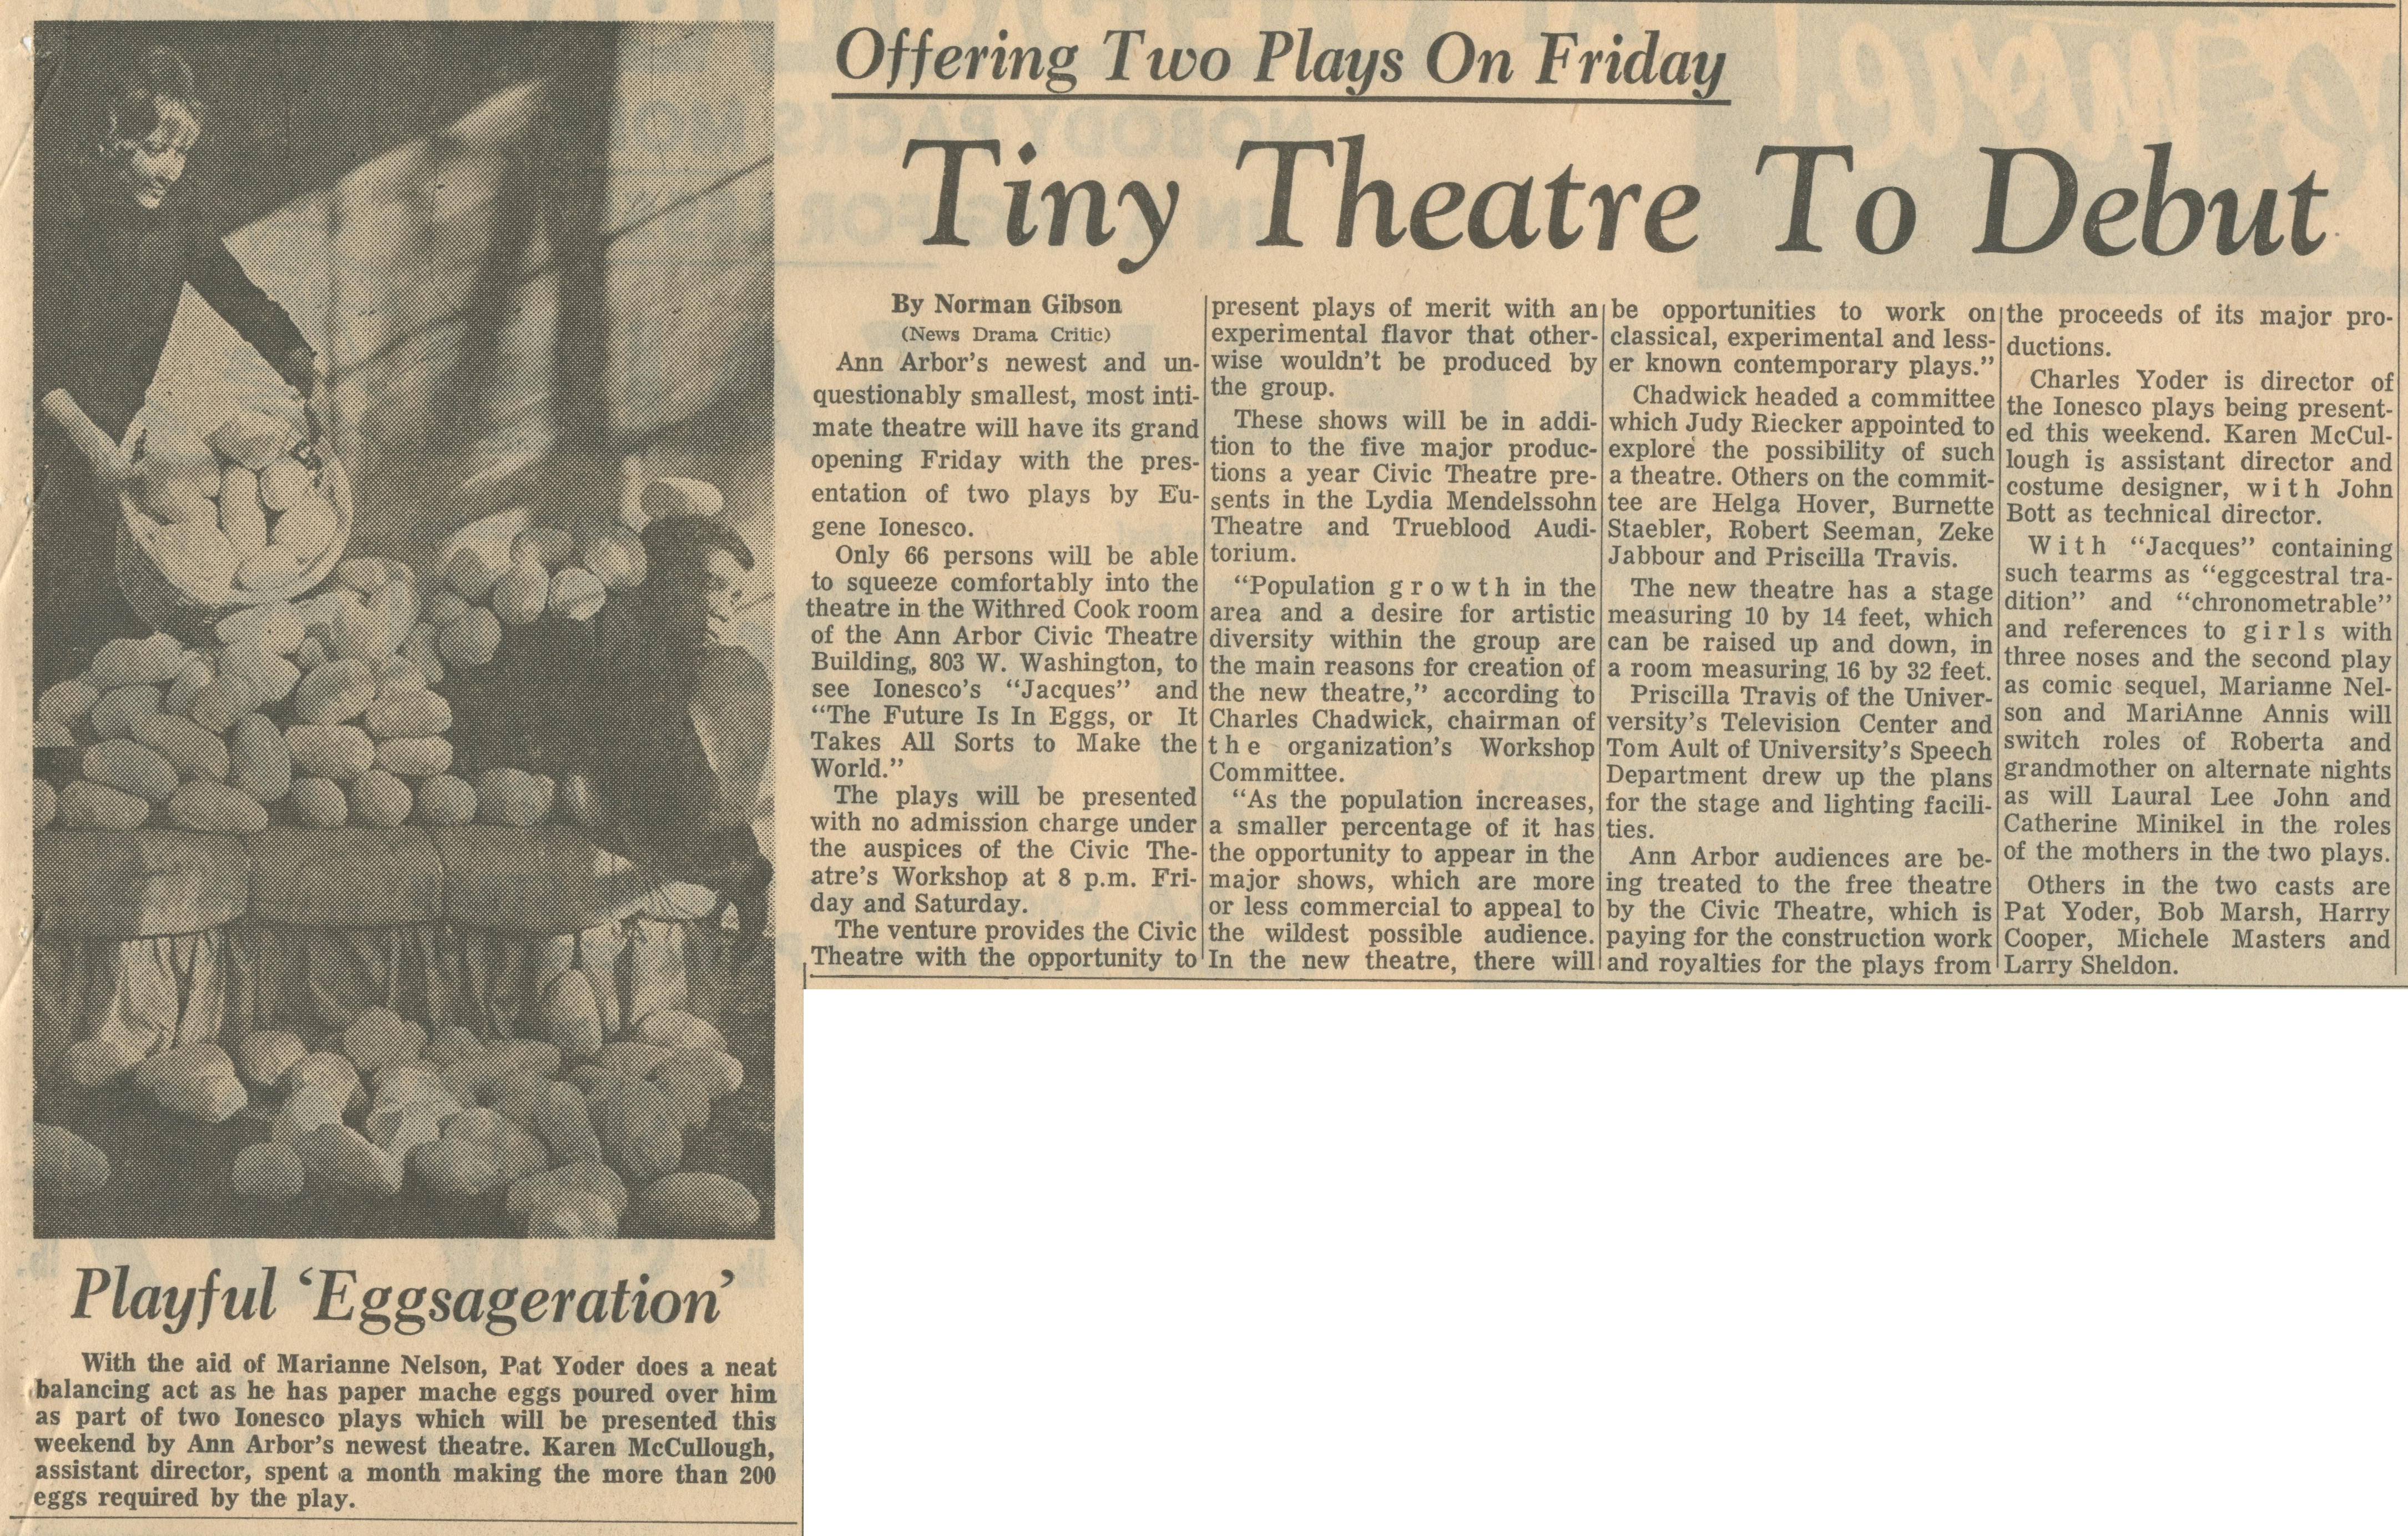 Tiny Theatre To Debut - Offering Two Plays On Friday image